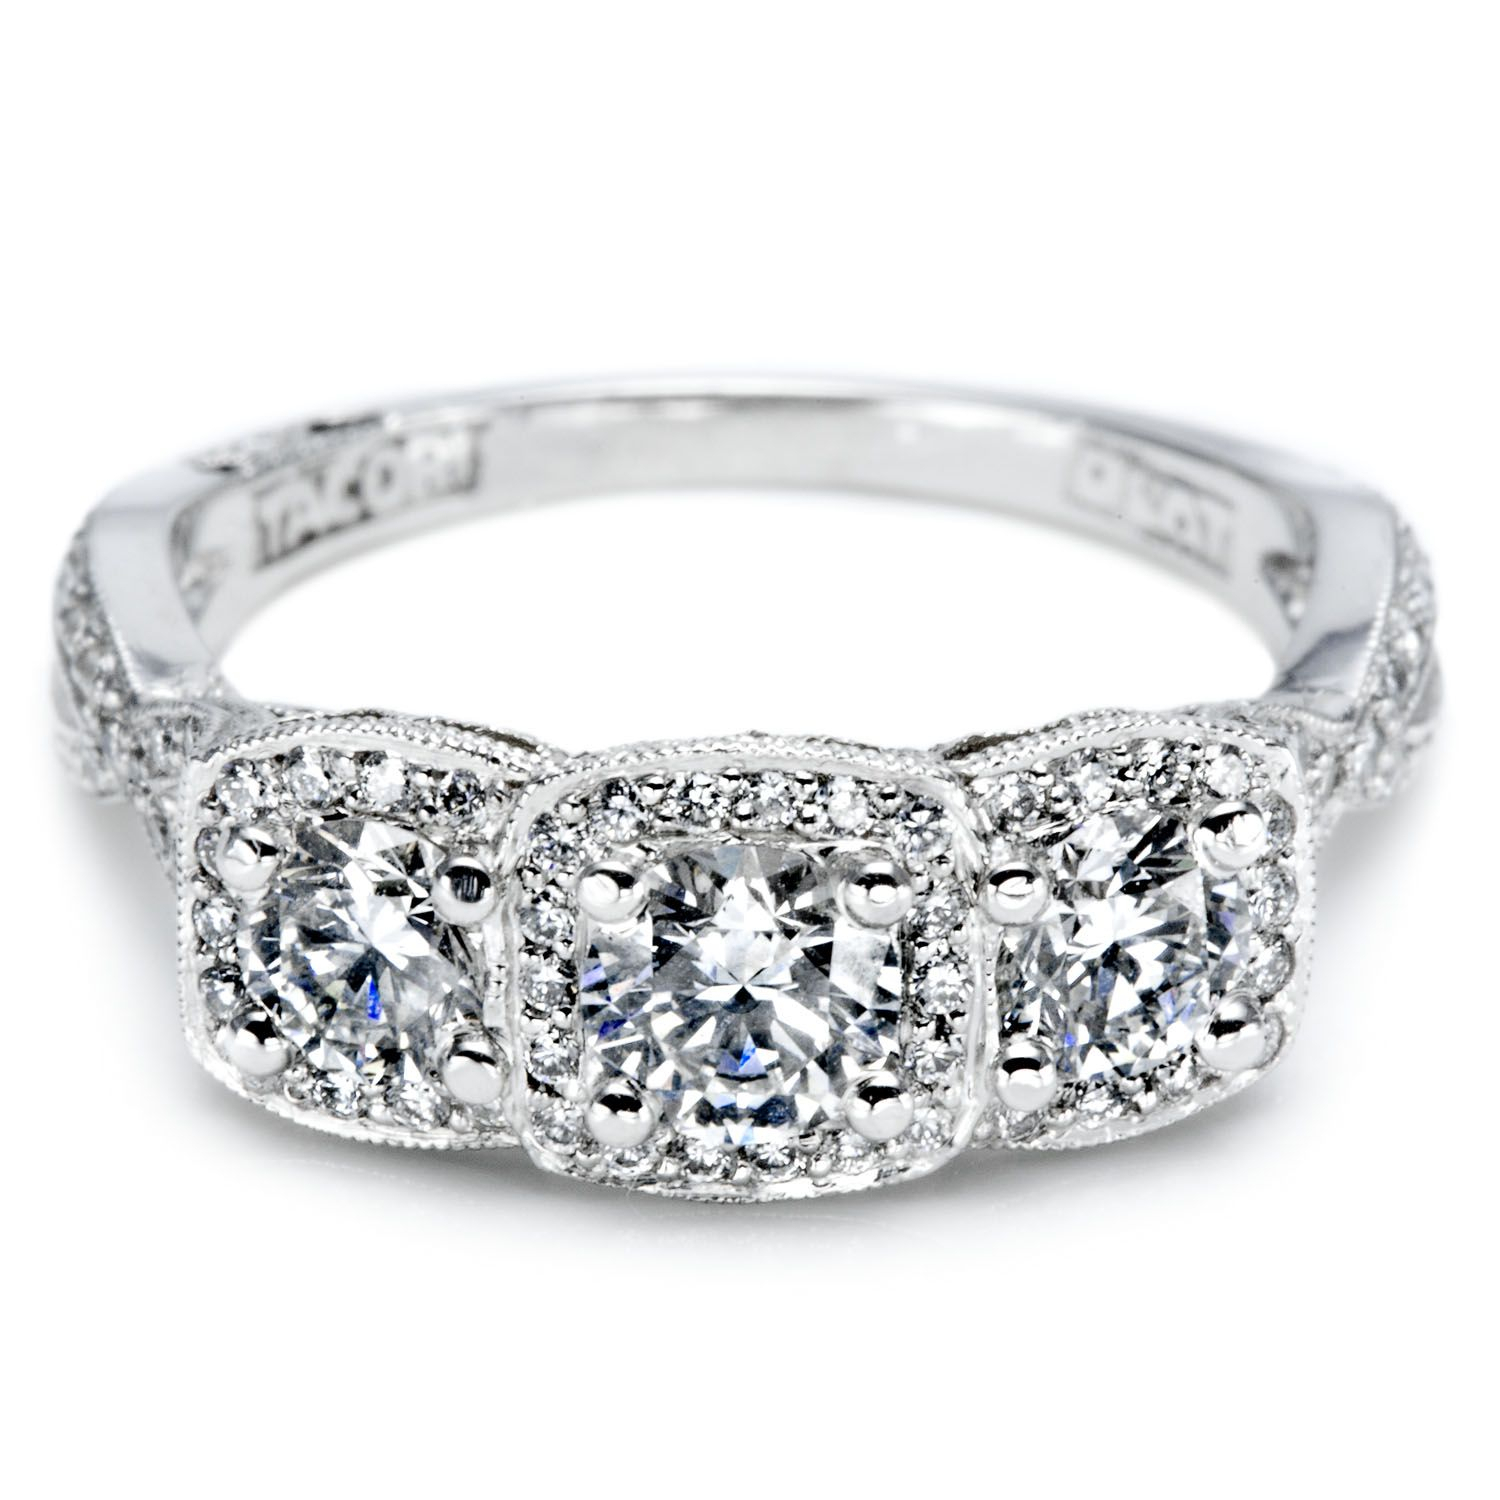 Unique Diamond Anniversary Rings | View Some Examples Of For Best And Newest Princess Cut And Round Diamond Three Row Anniversary Bands In White Gold (Gallery 14 of 25)